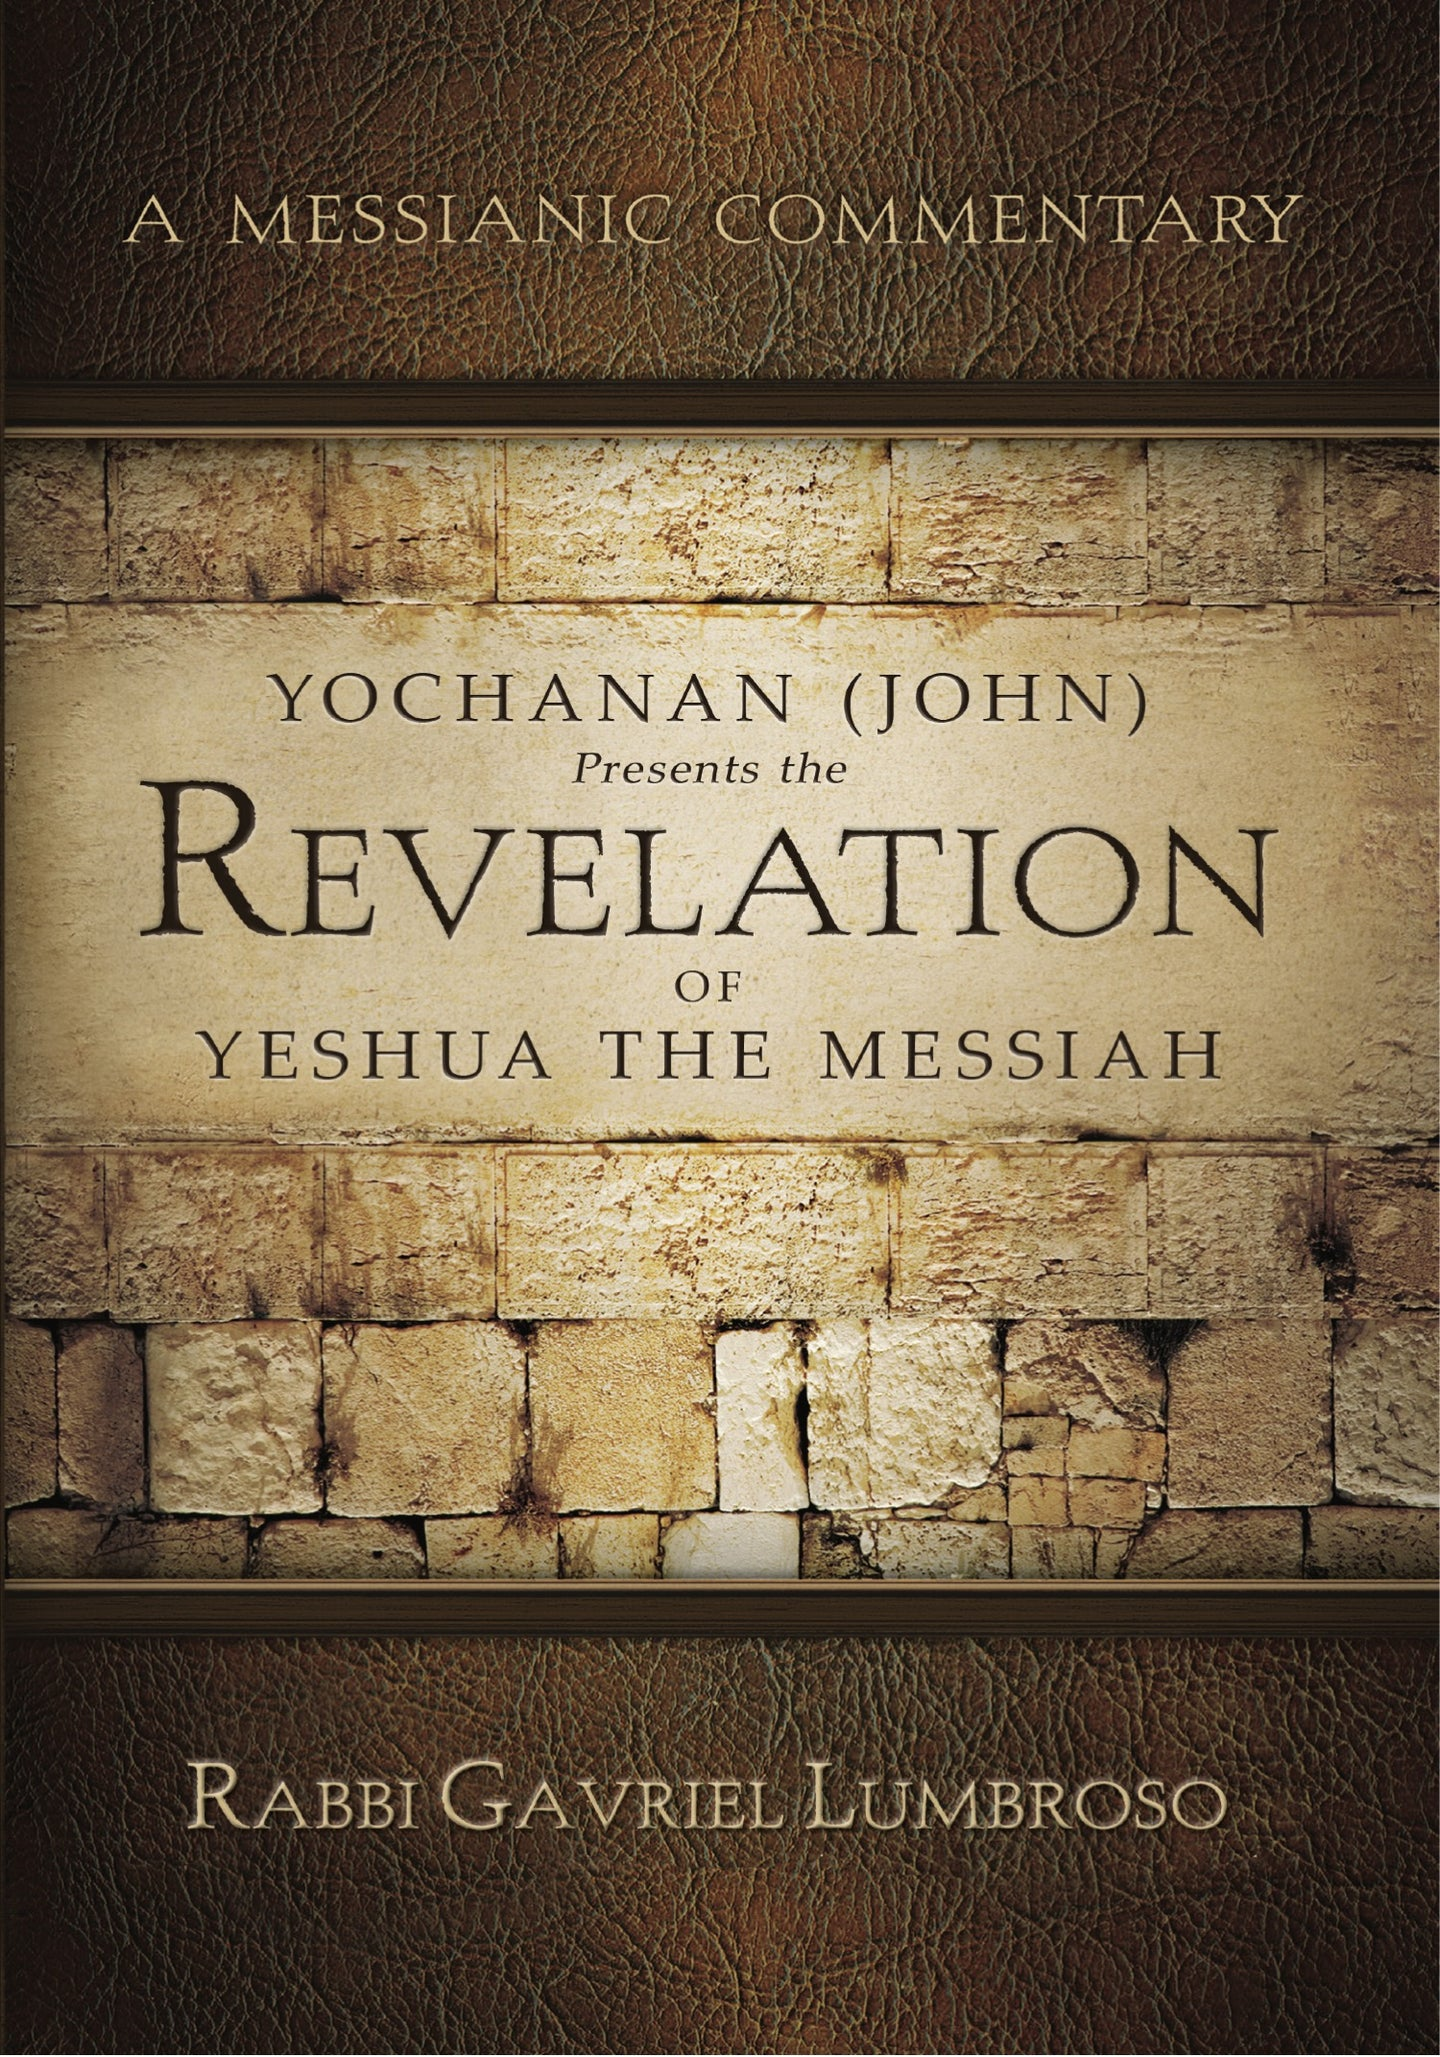 A Messianic Commentary: Yochanan (John) Presents the Revelation of Yeshua the Messiah - by Rabbi Gavriel Lumbroso